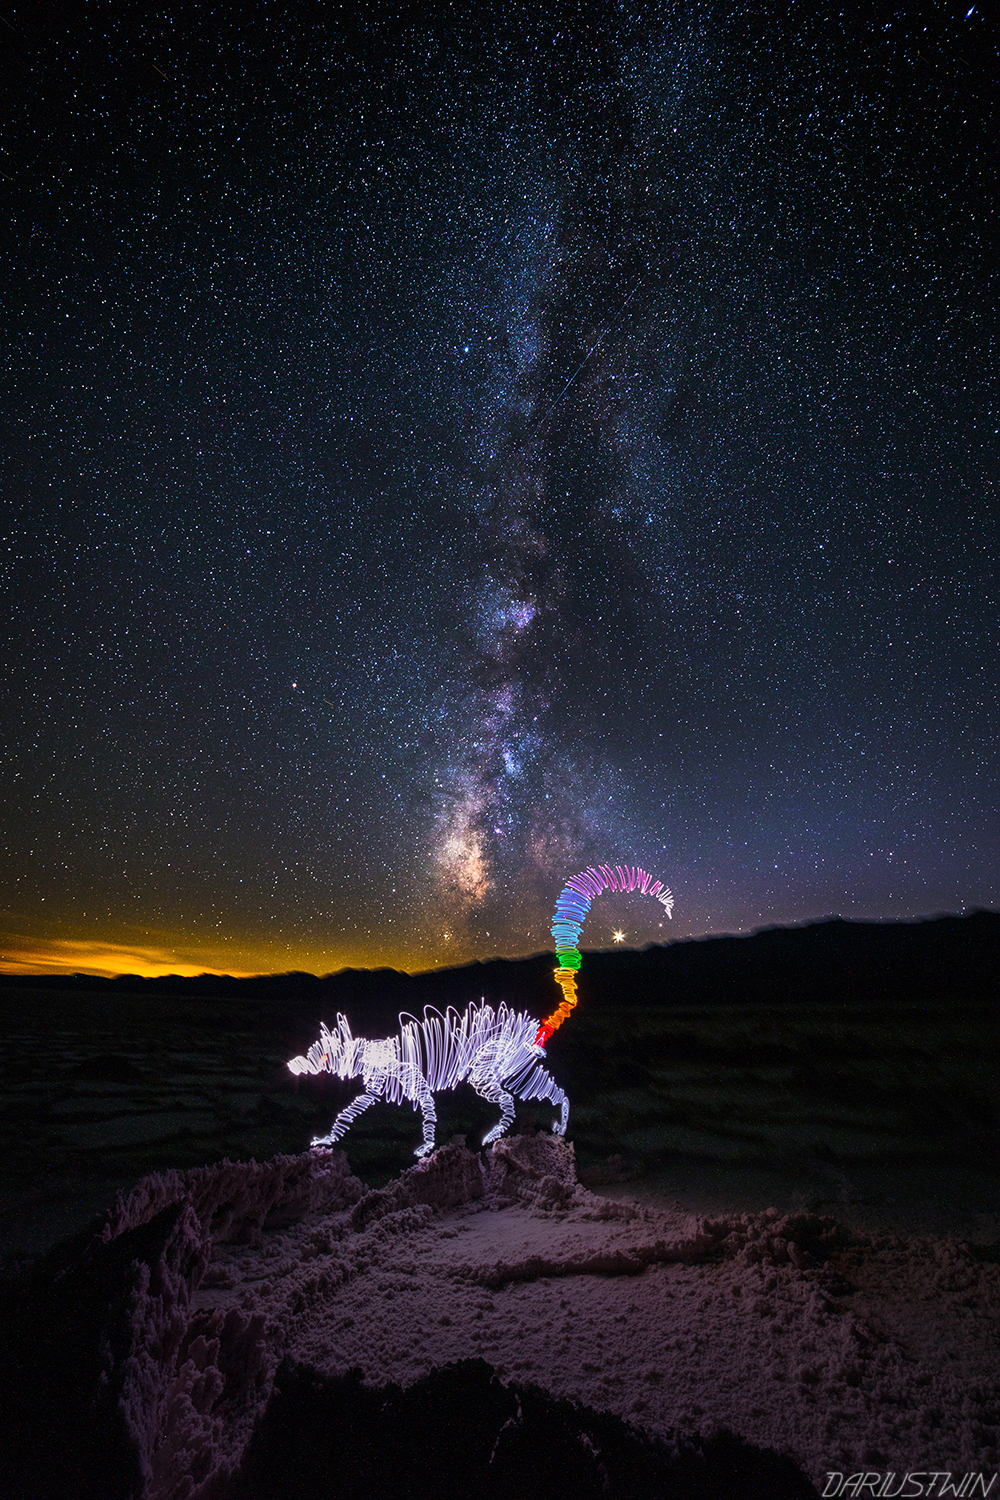 lemur_animal_art_deathvalley_travel_night_photography_stars_astrophotography_dariustwin_darren_pearson_milkyway.jpg